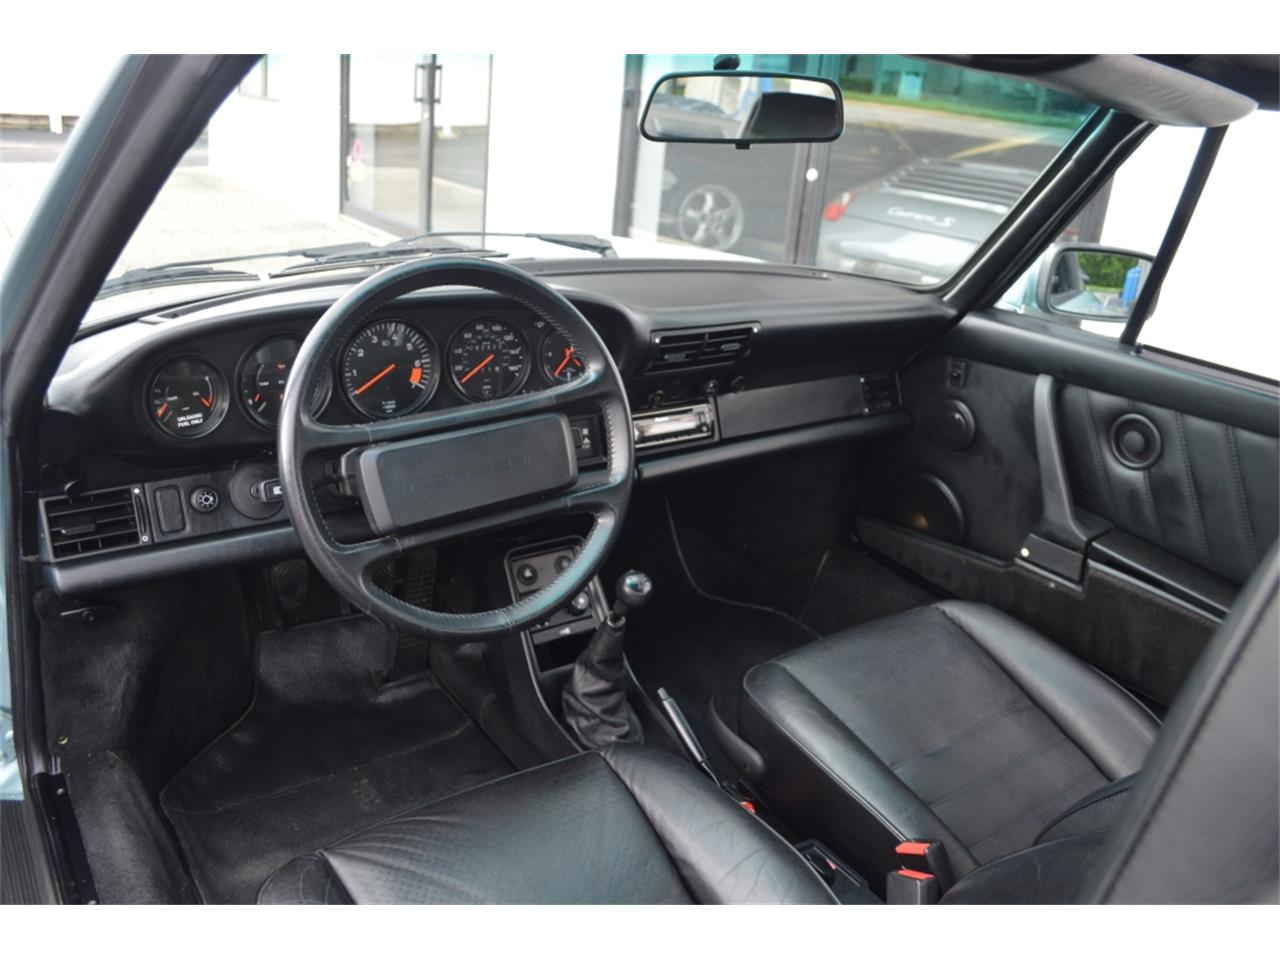 1988 Porsche Carrera (CC-1392514) for sale in West Chester, Pennsylvania